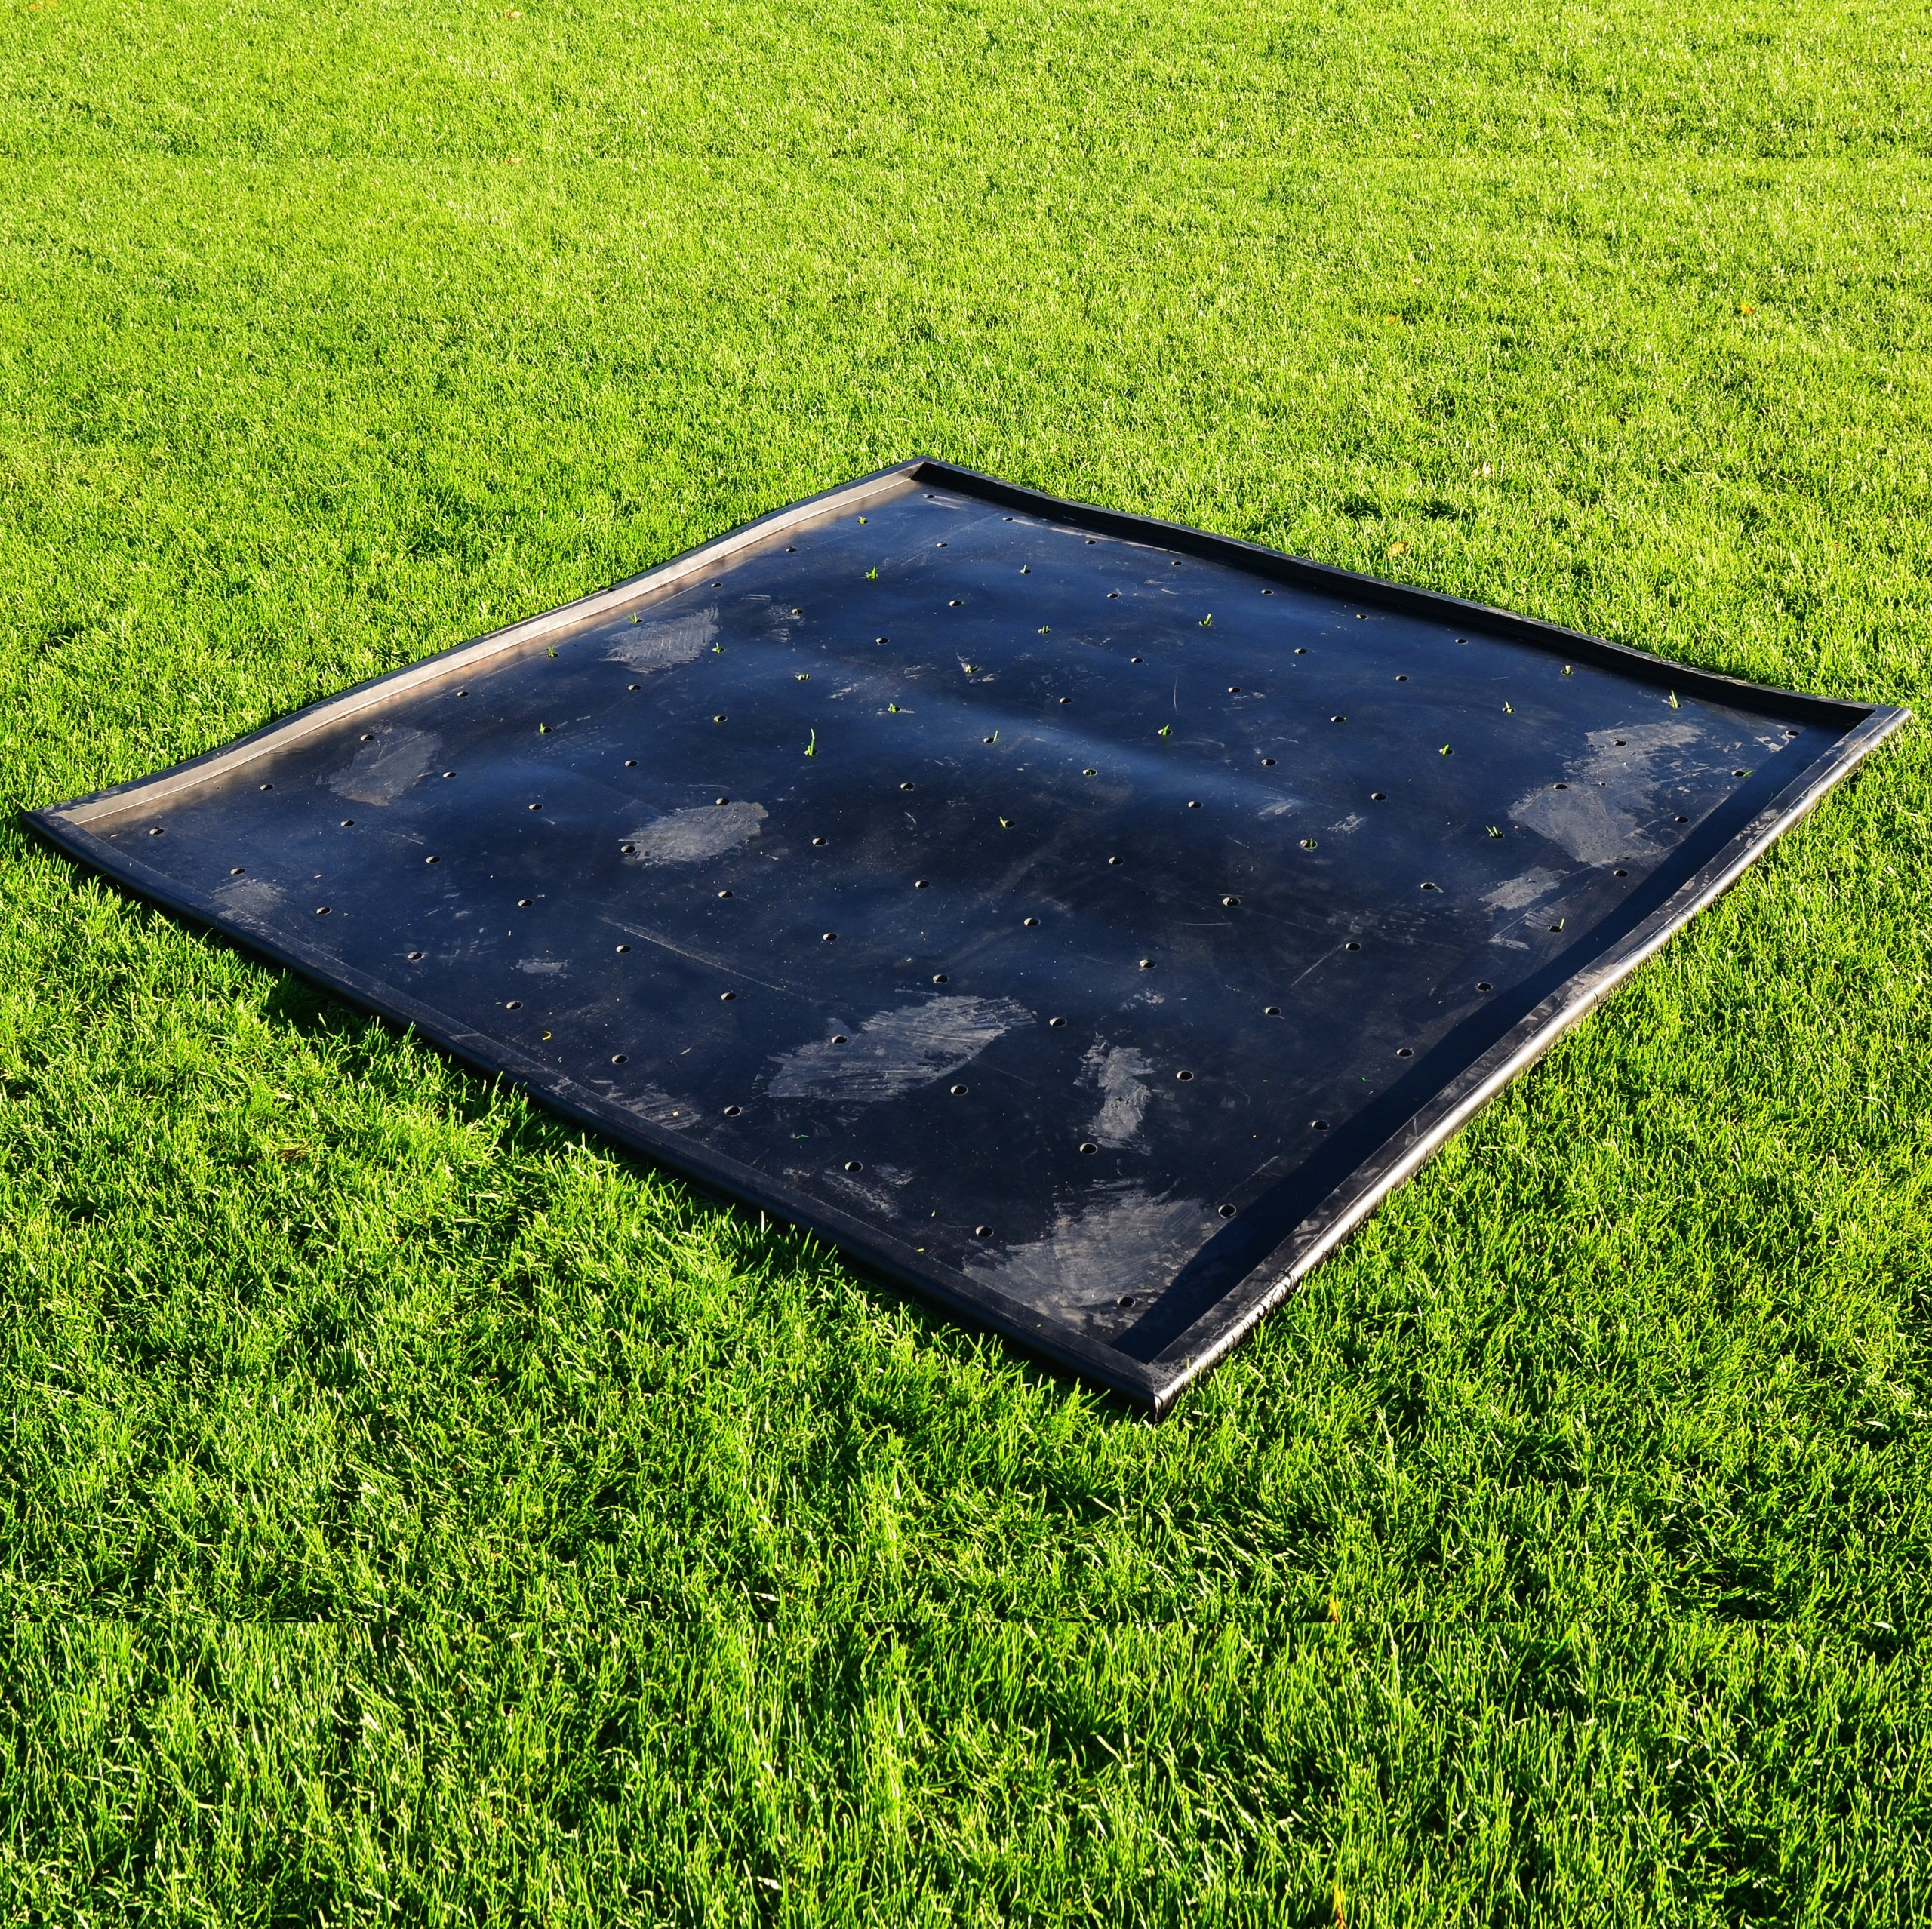 FORB Rubber Golf Mat Base [5ft x 5ft] - Anti-Skid Protective Rubber Base For Use With Driving Range Mats [Net World Sports]